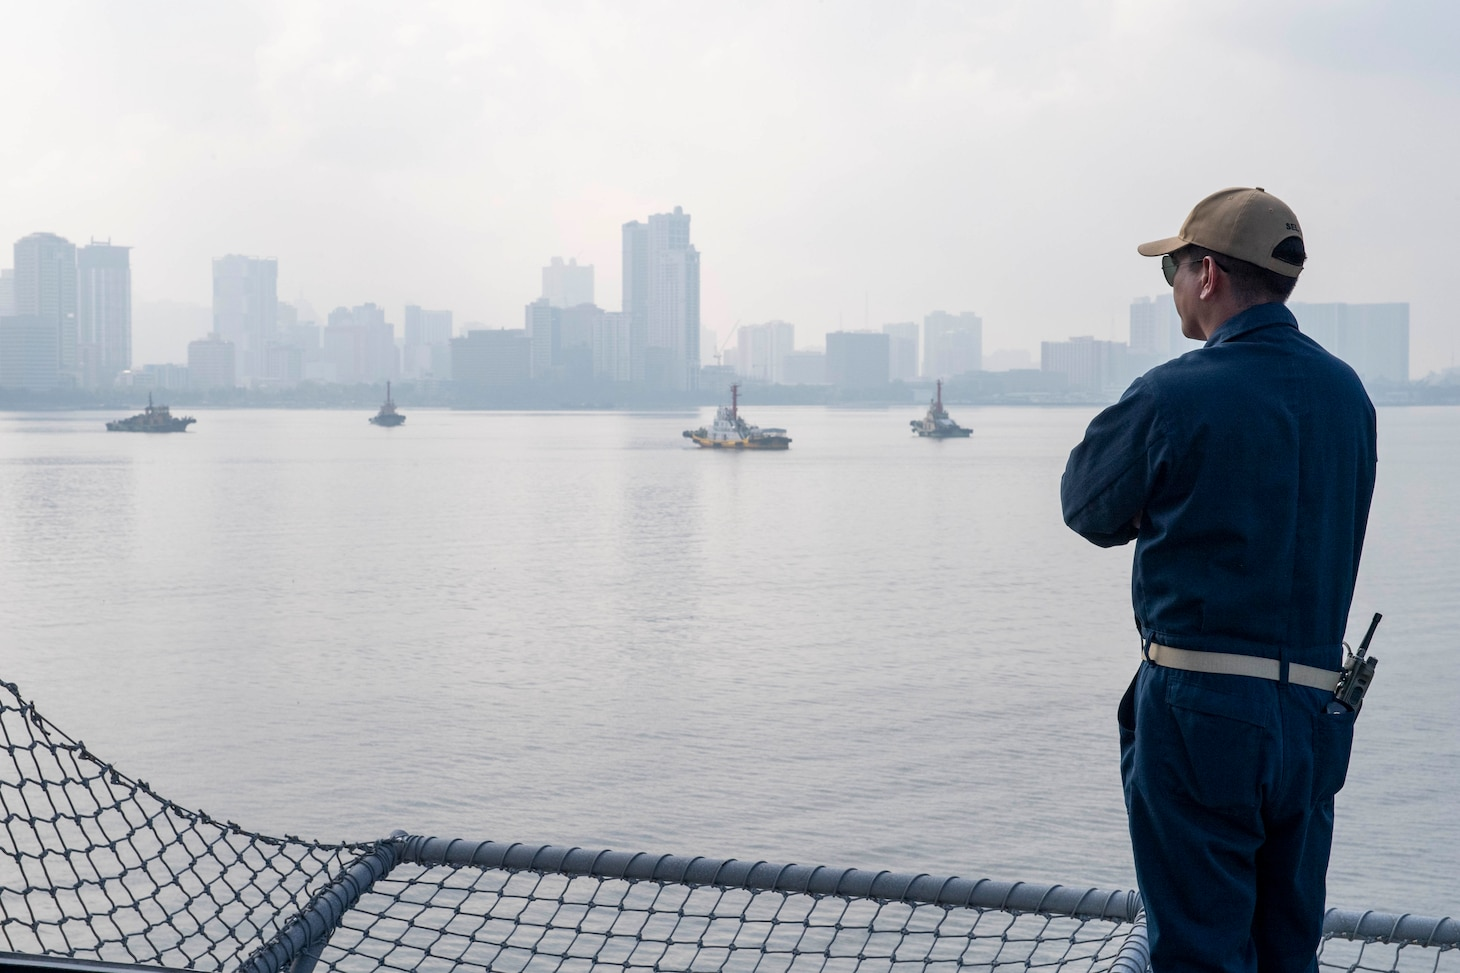 Command Senior Chief Donald Alvarado, from Tucson, Ariz., watches as Independence-variant littoral combat ship USS Charleston (LCS 18) pulls into port, Aug. 16. Charleston, part of Destroyer Squadron Seven, is on a rotational deployment operating in the U.S. 7th Fleet area of operation to enhance interoperability with partners and serve as a ready-response force in support of a free and open Indo-Pacific region.